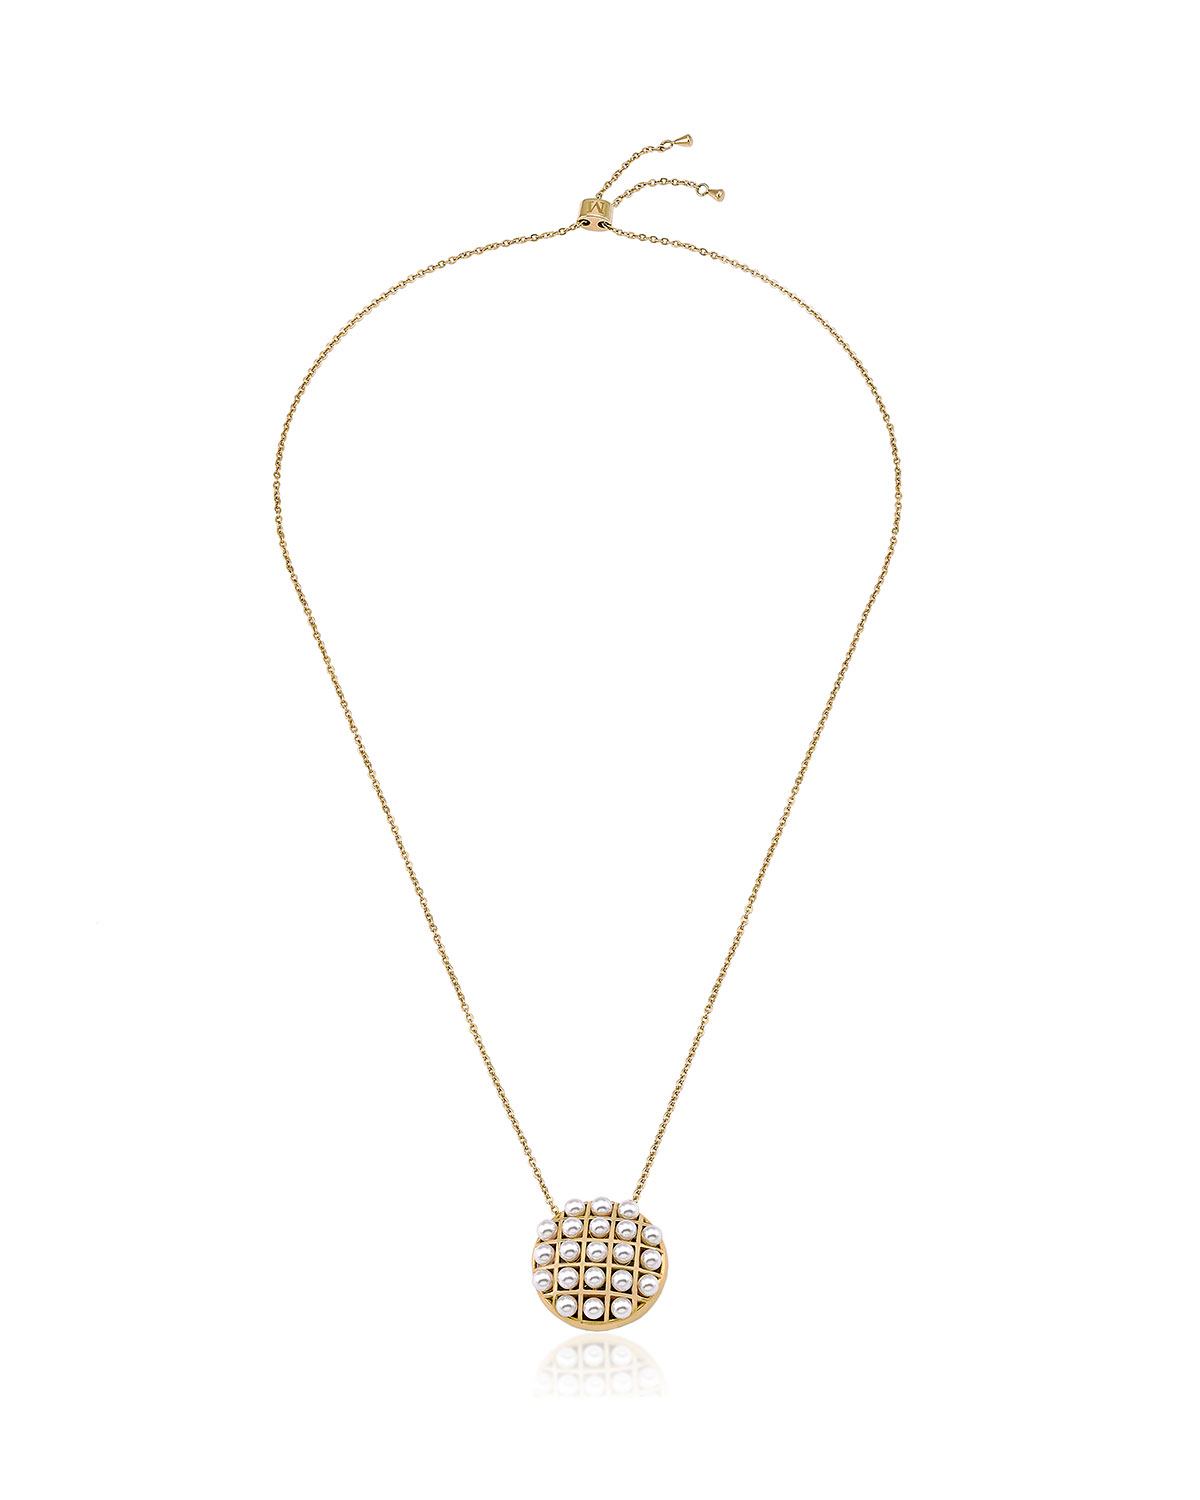 4mm Multi-Pearly Pendant Necklace